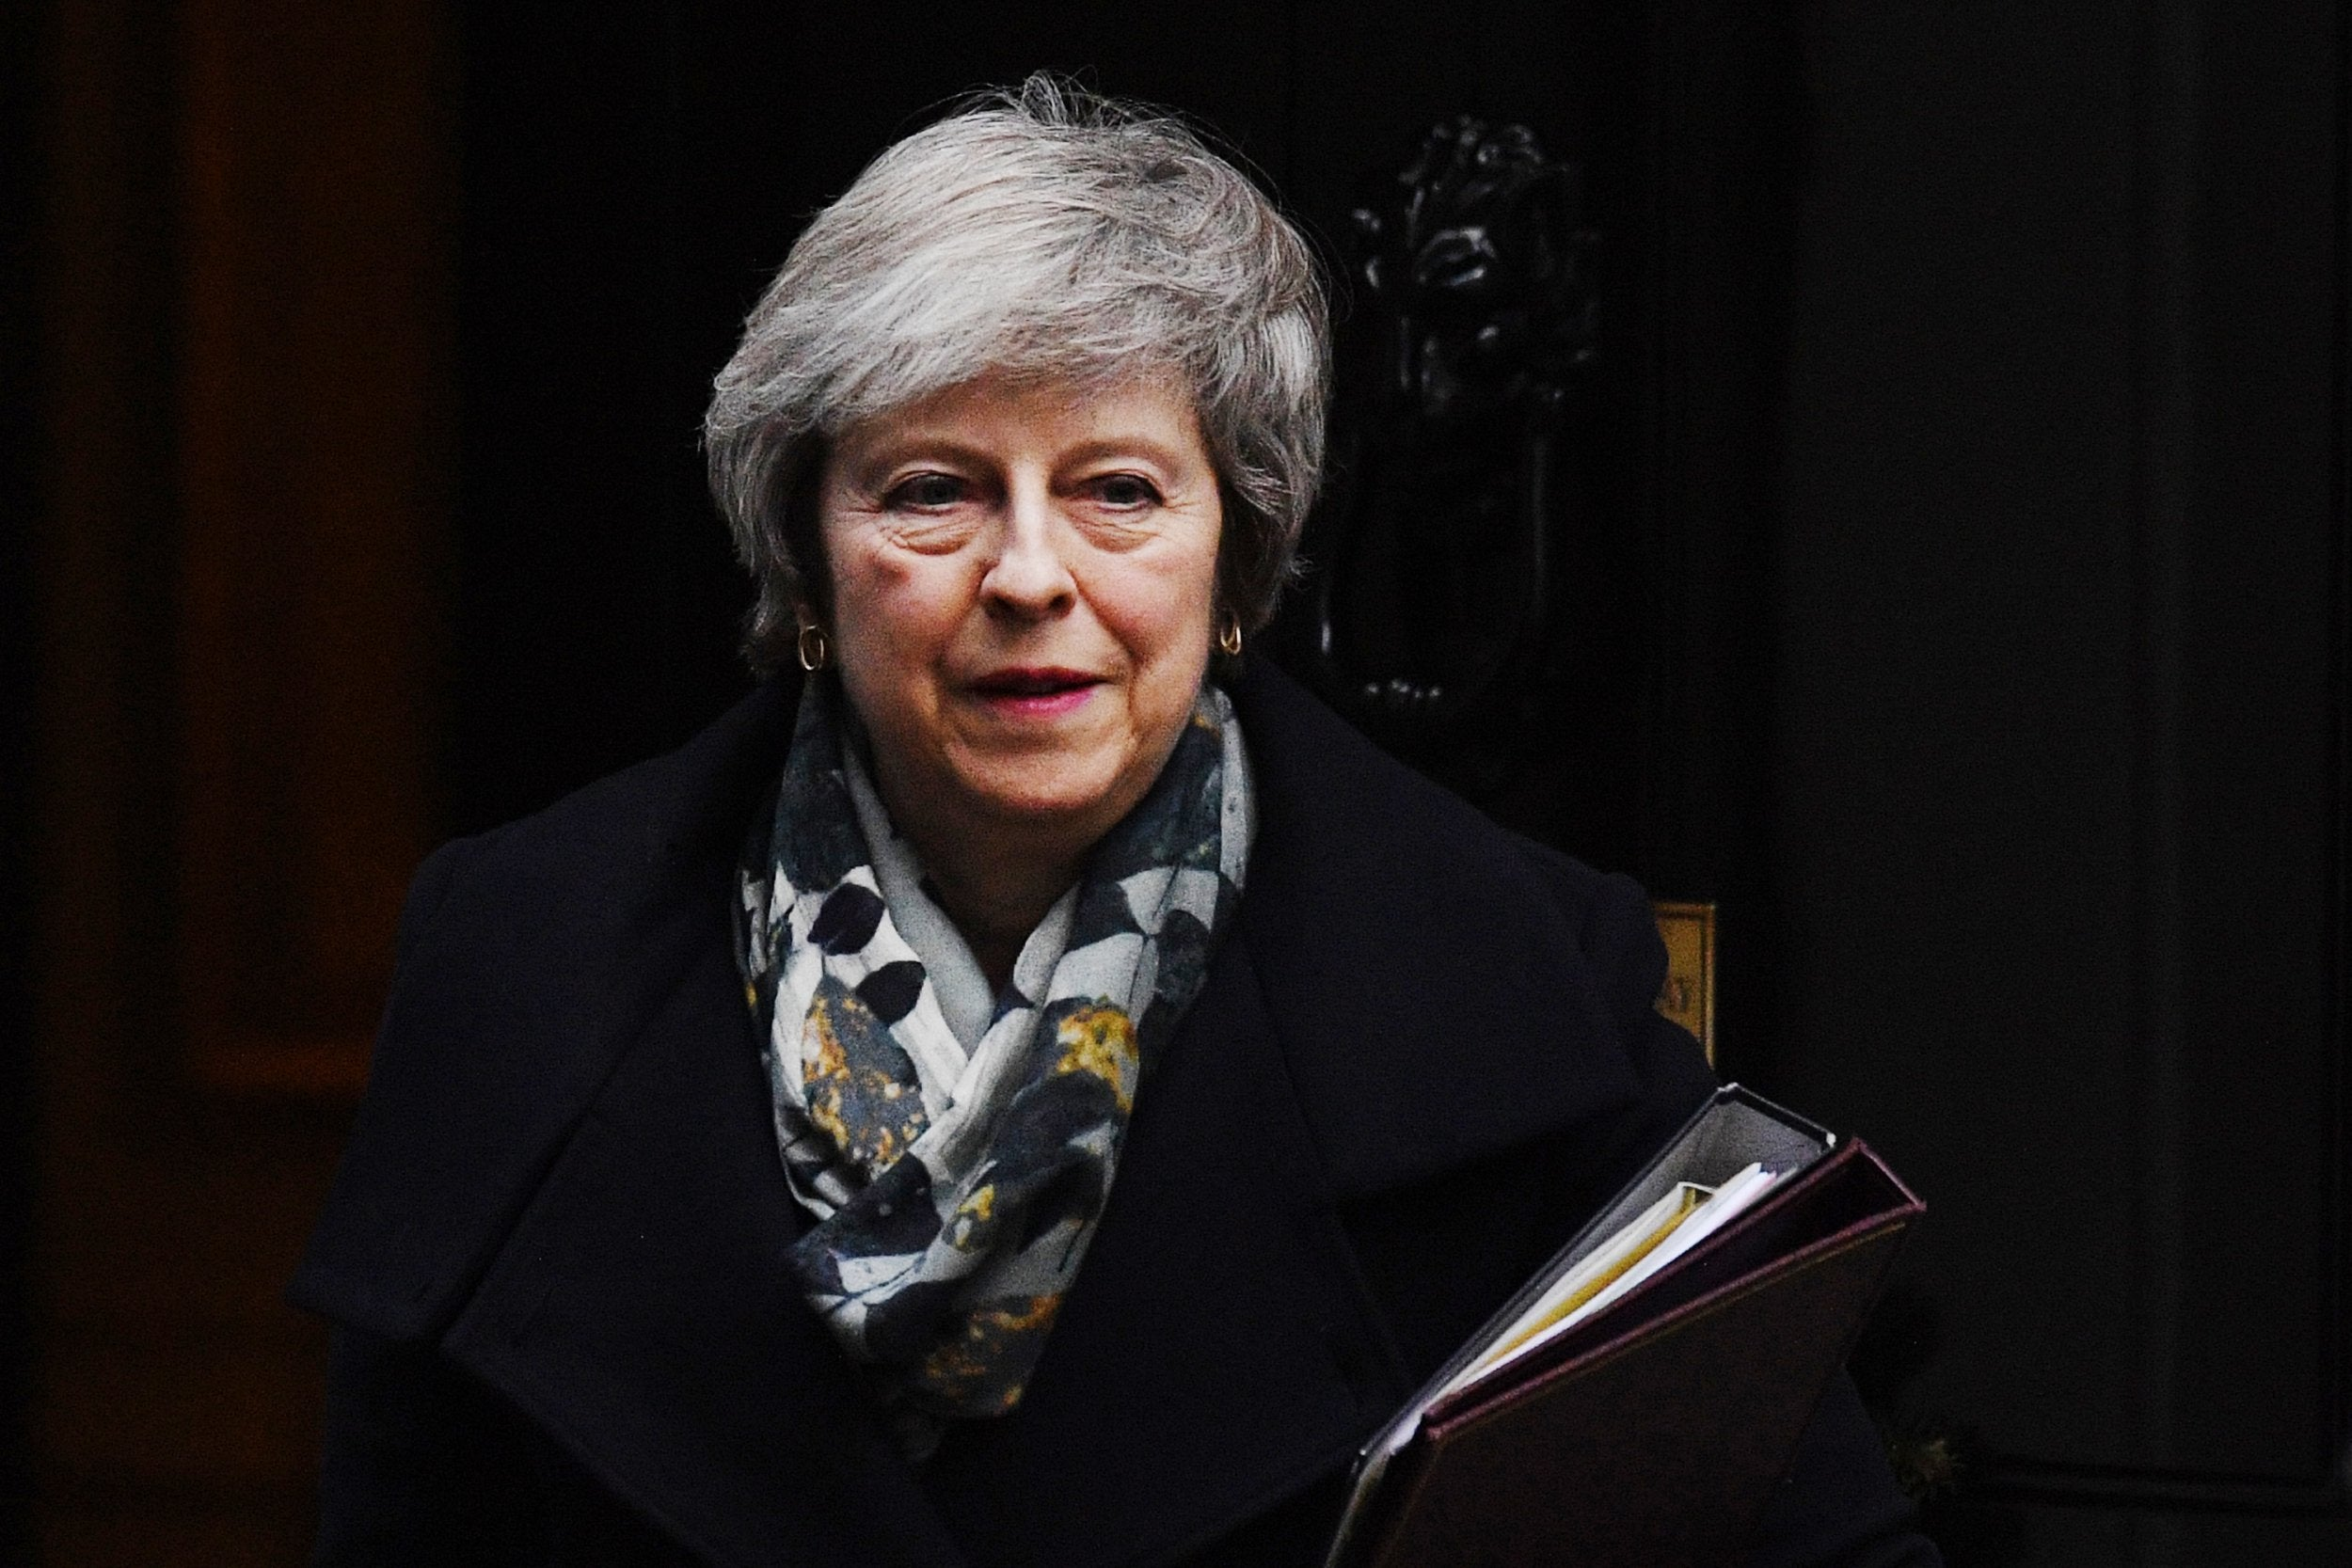 Theresa May's Brexit deal poses a threat to human rights – we aren't talking about this enough